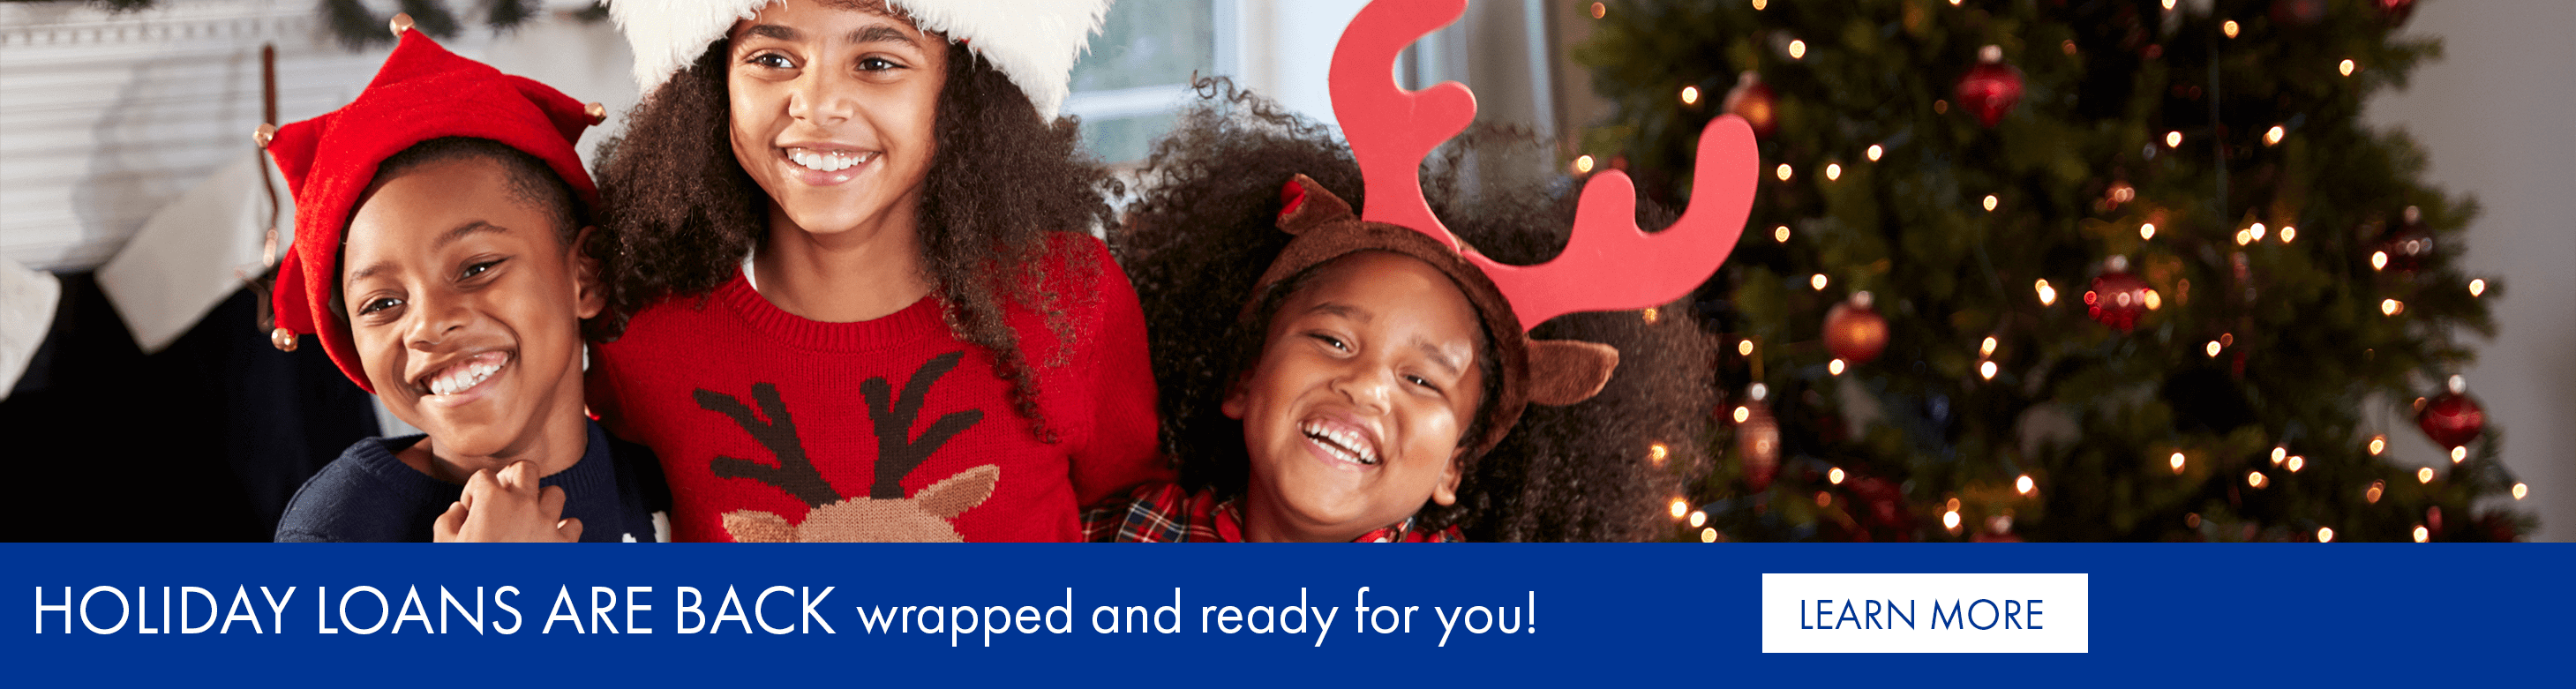 Holiday loans are back wrapped and ready for you!